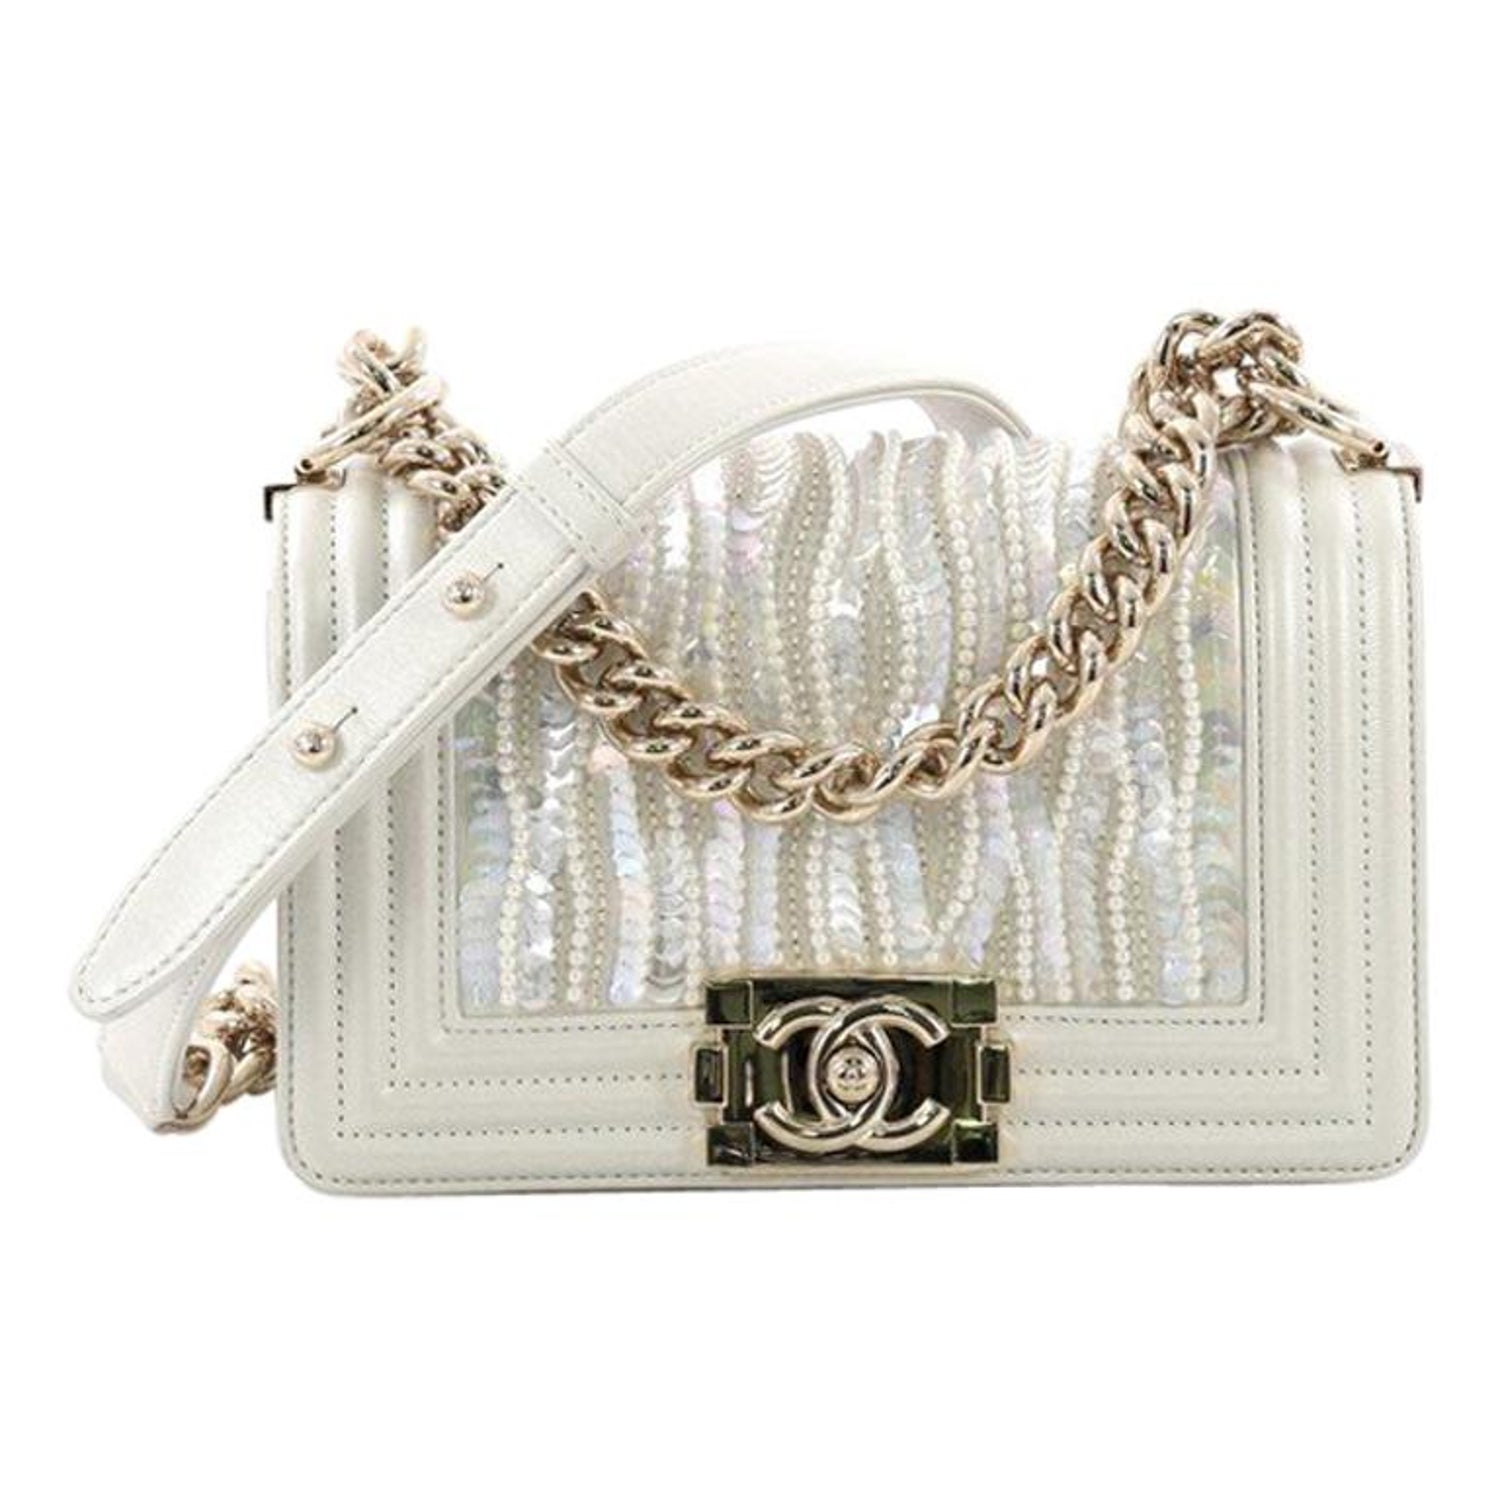 273a13cd14ac1d Chanel Boy Flap Bag Sequin and Pearl Embellished Leather Small at 1stdibs